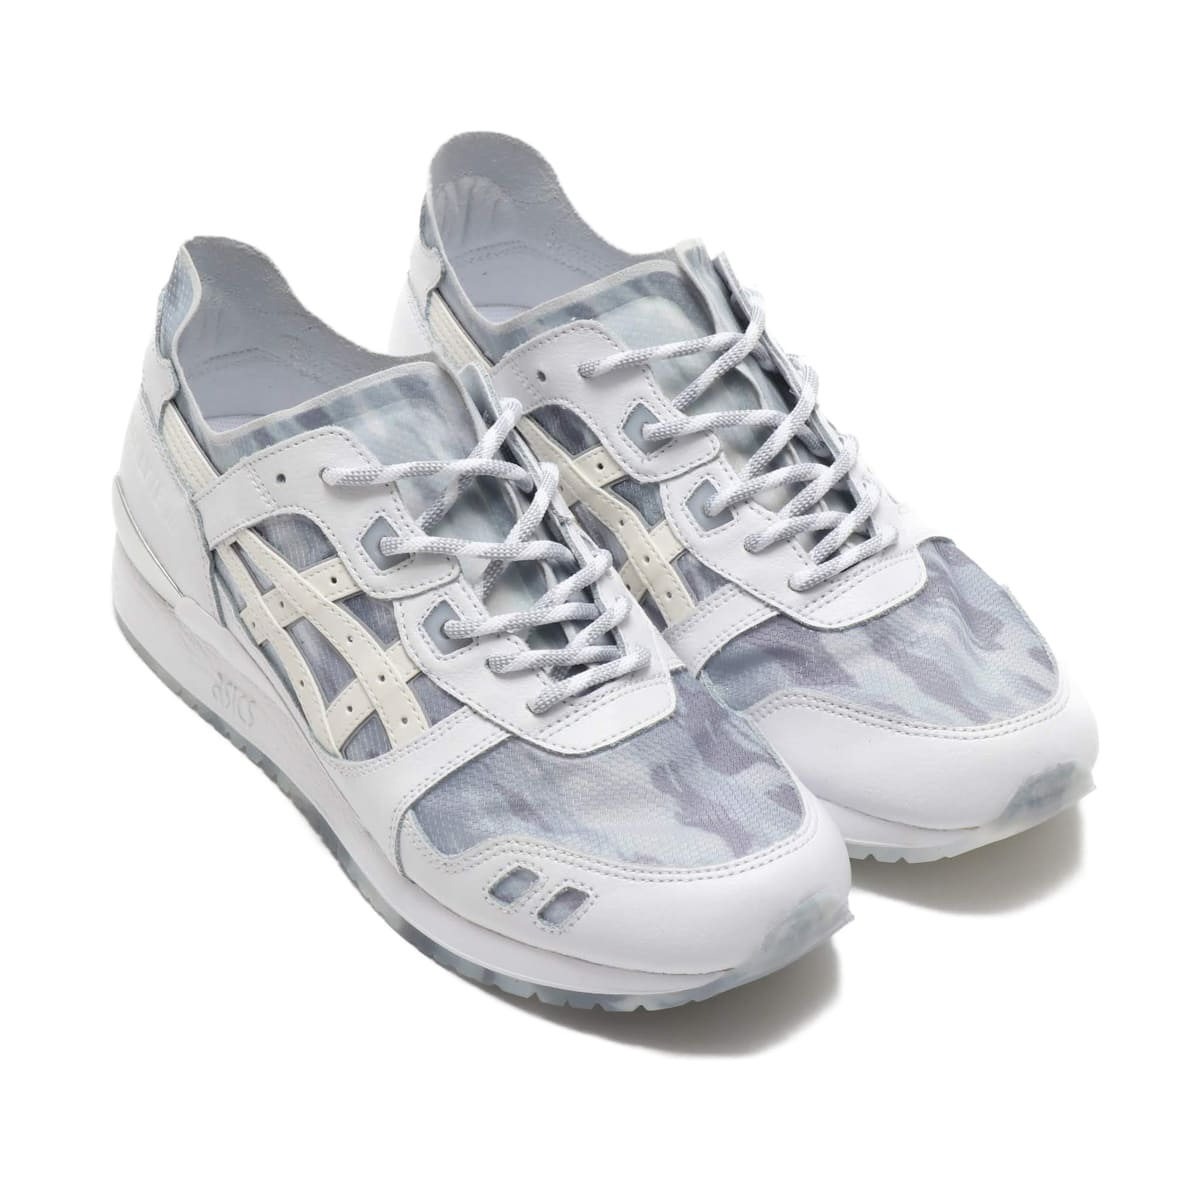 ASICSTIGER GEL-LYTE III NEXKIN WHITE/SILVER 19AW-S_photo_large